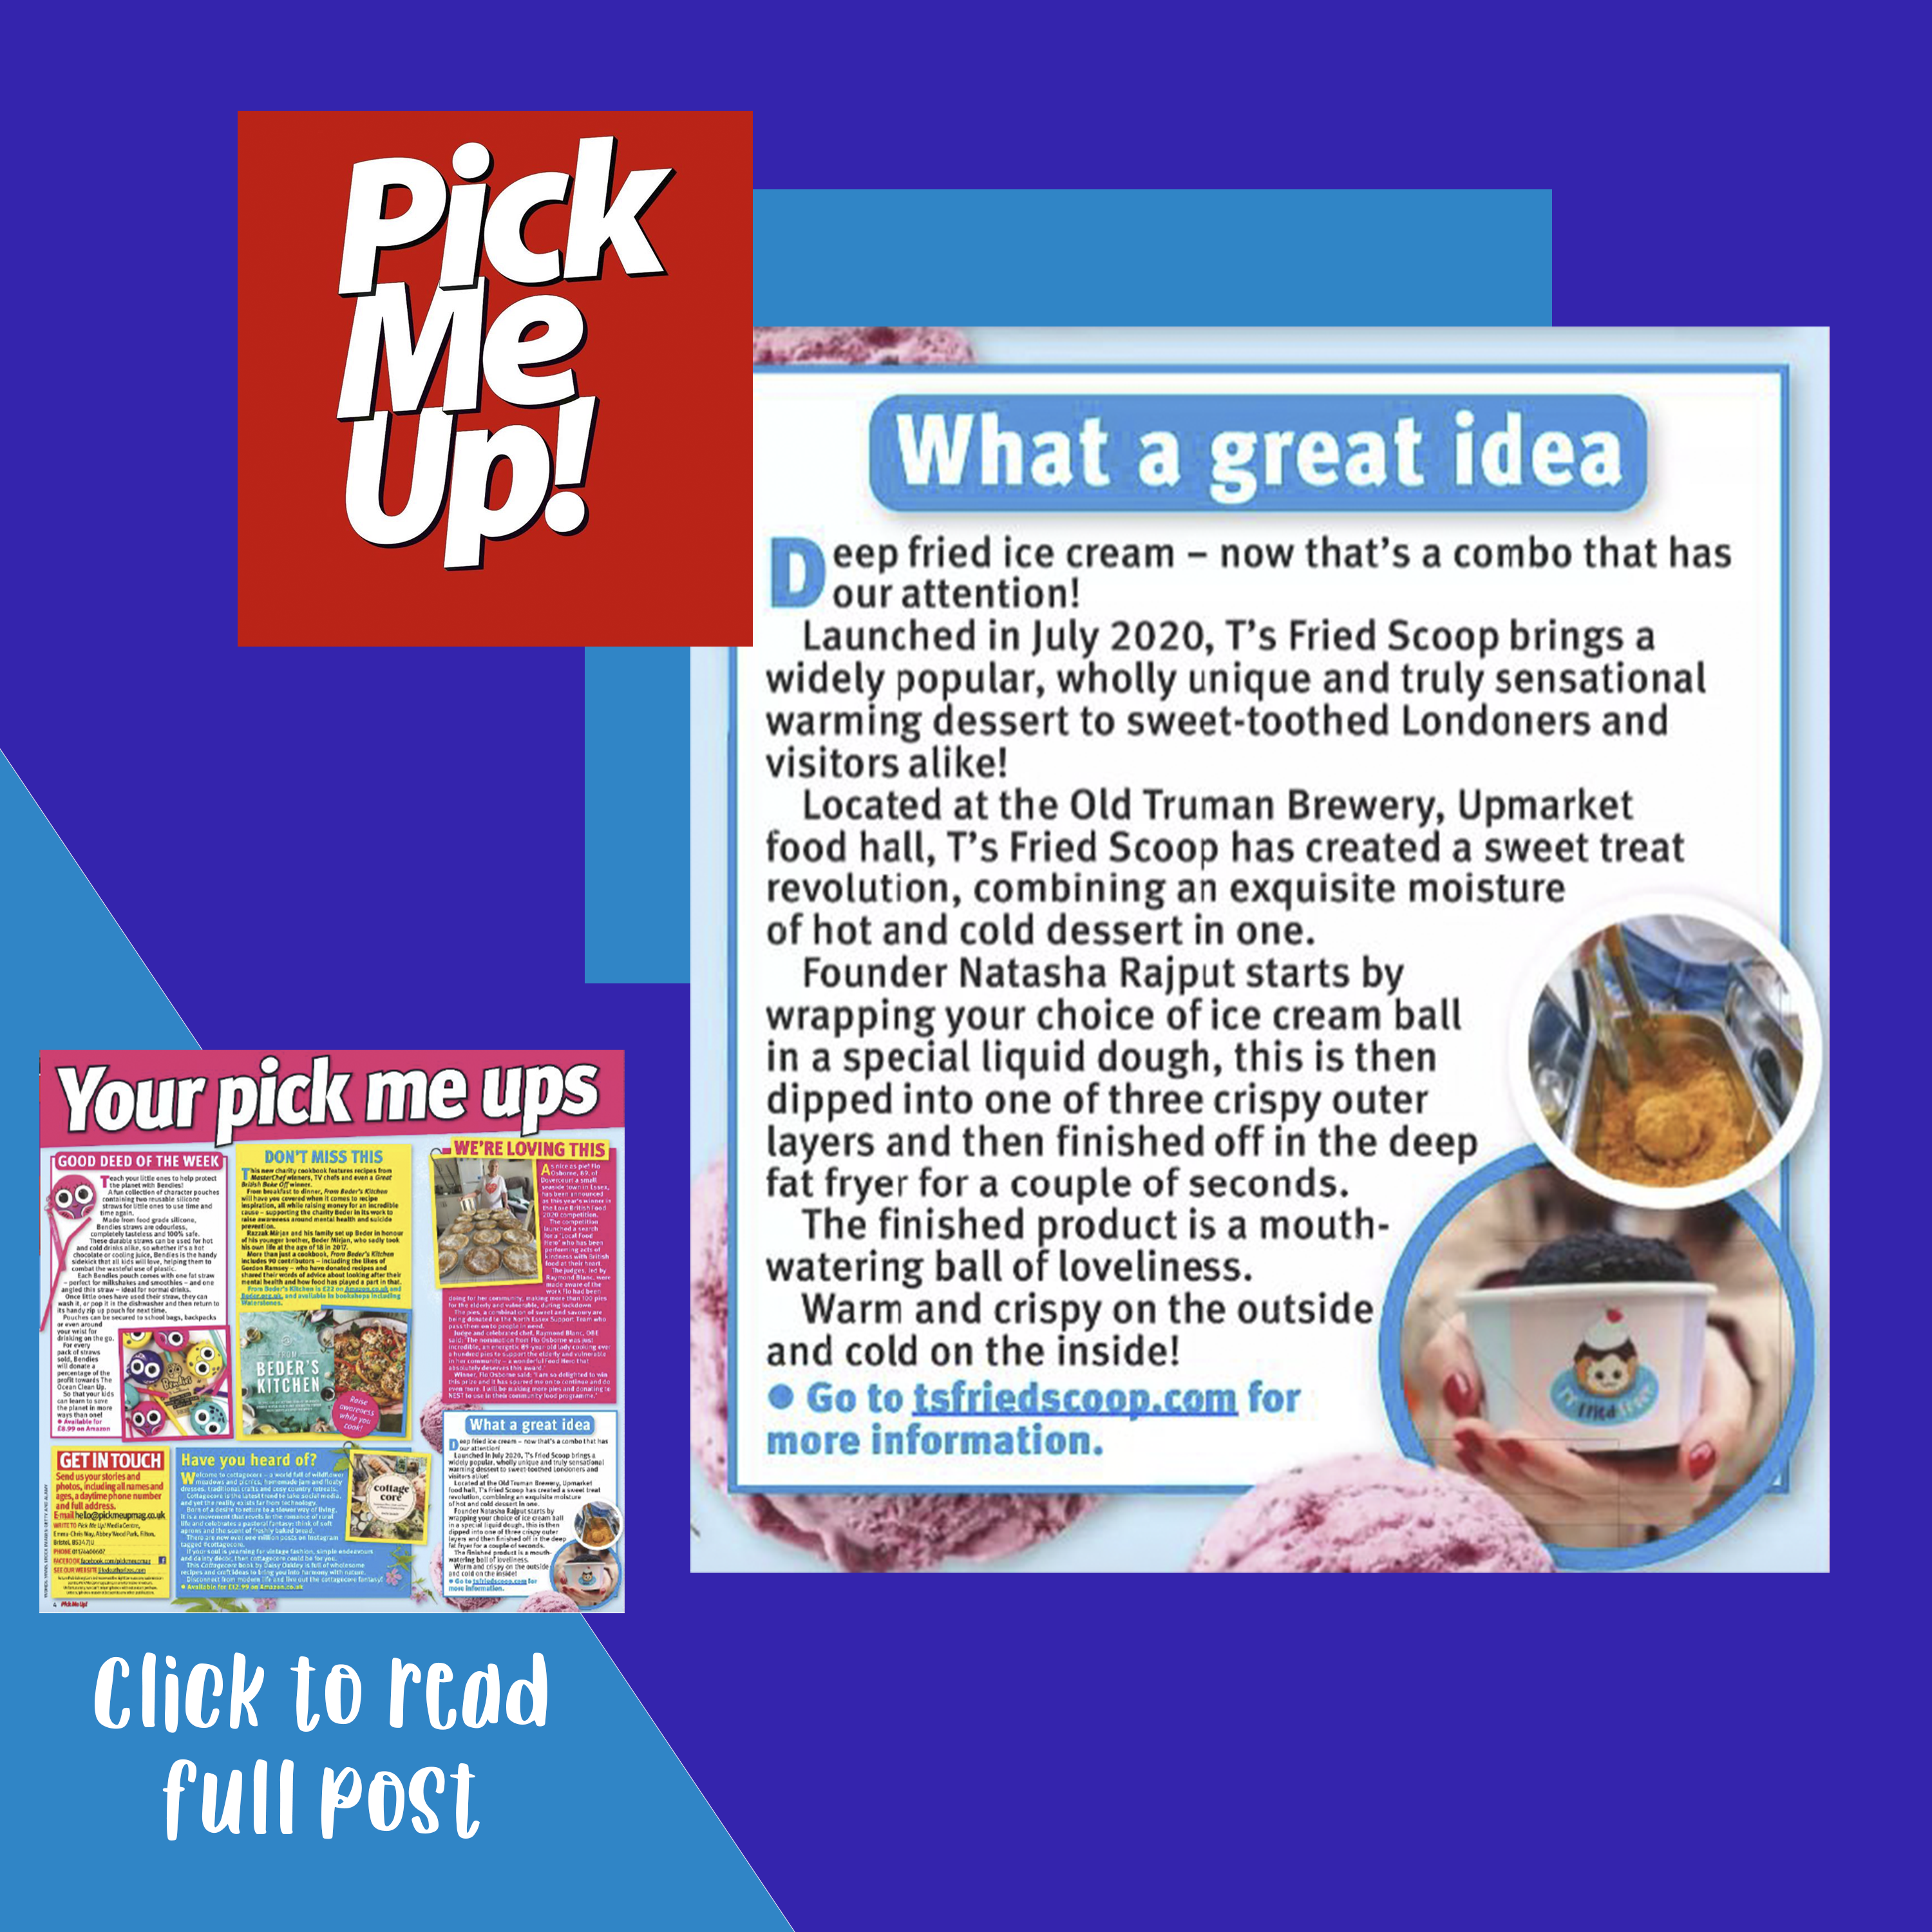 pick me up t's fried scoop review